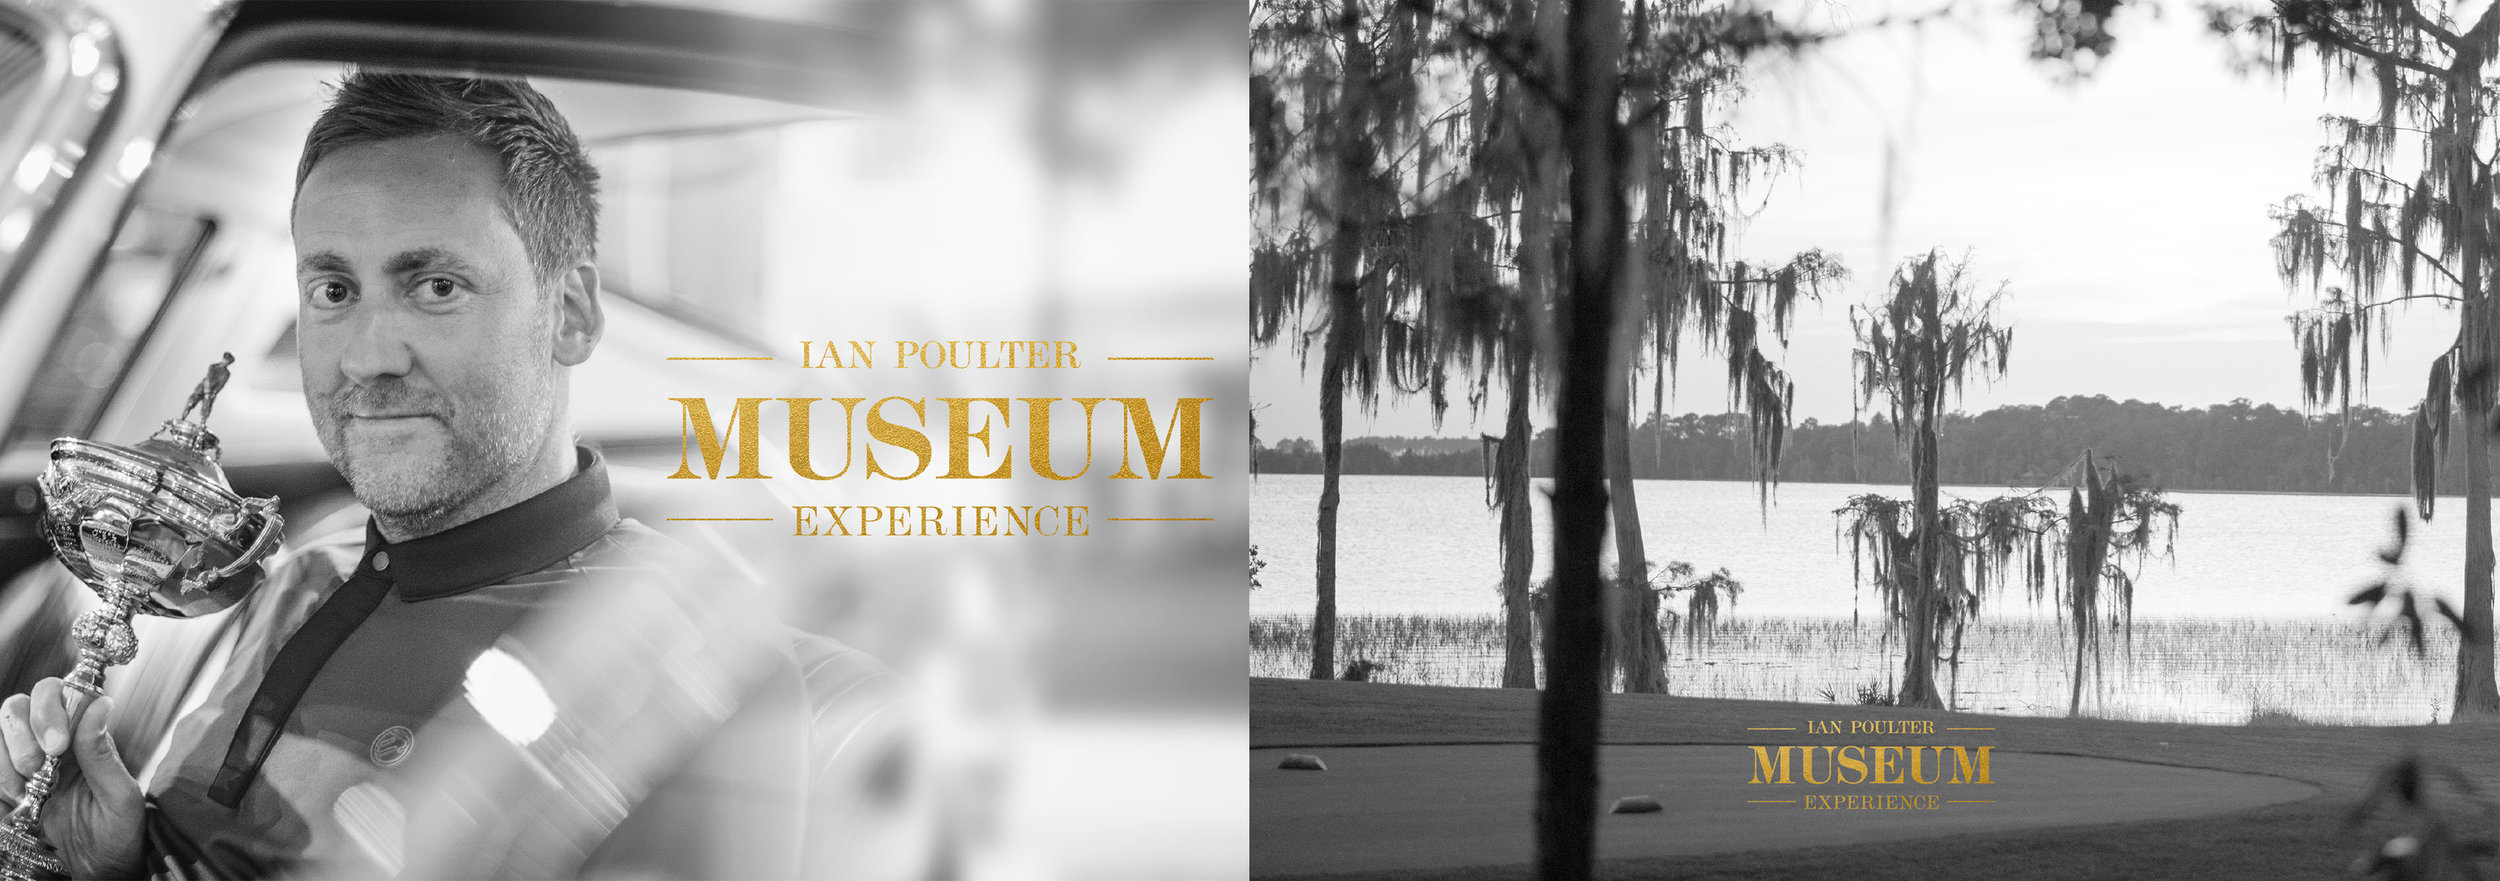 MuseumExperience_Booklet_Outside.jpg